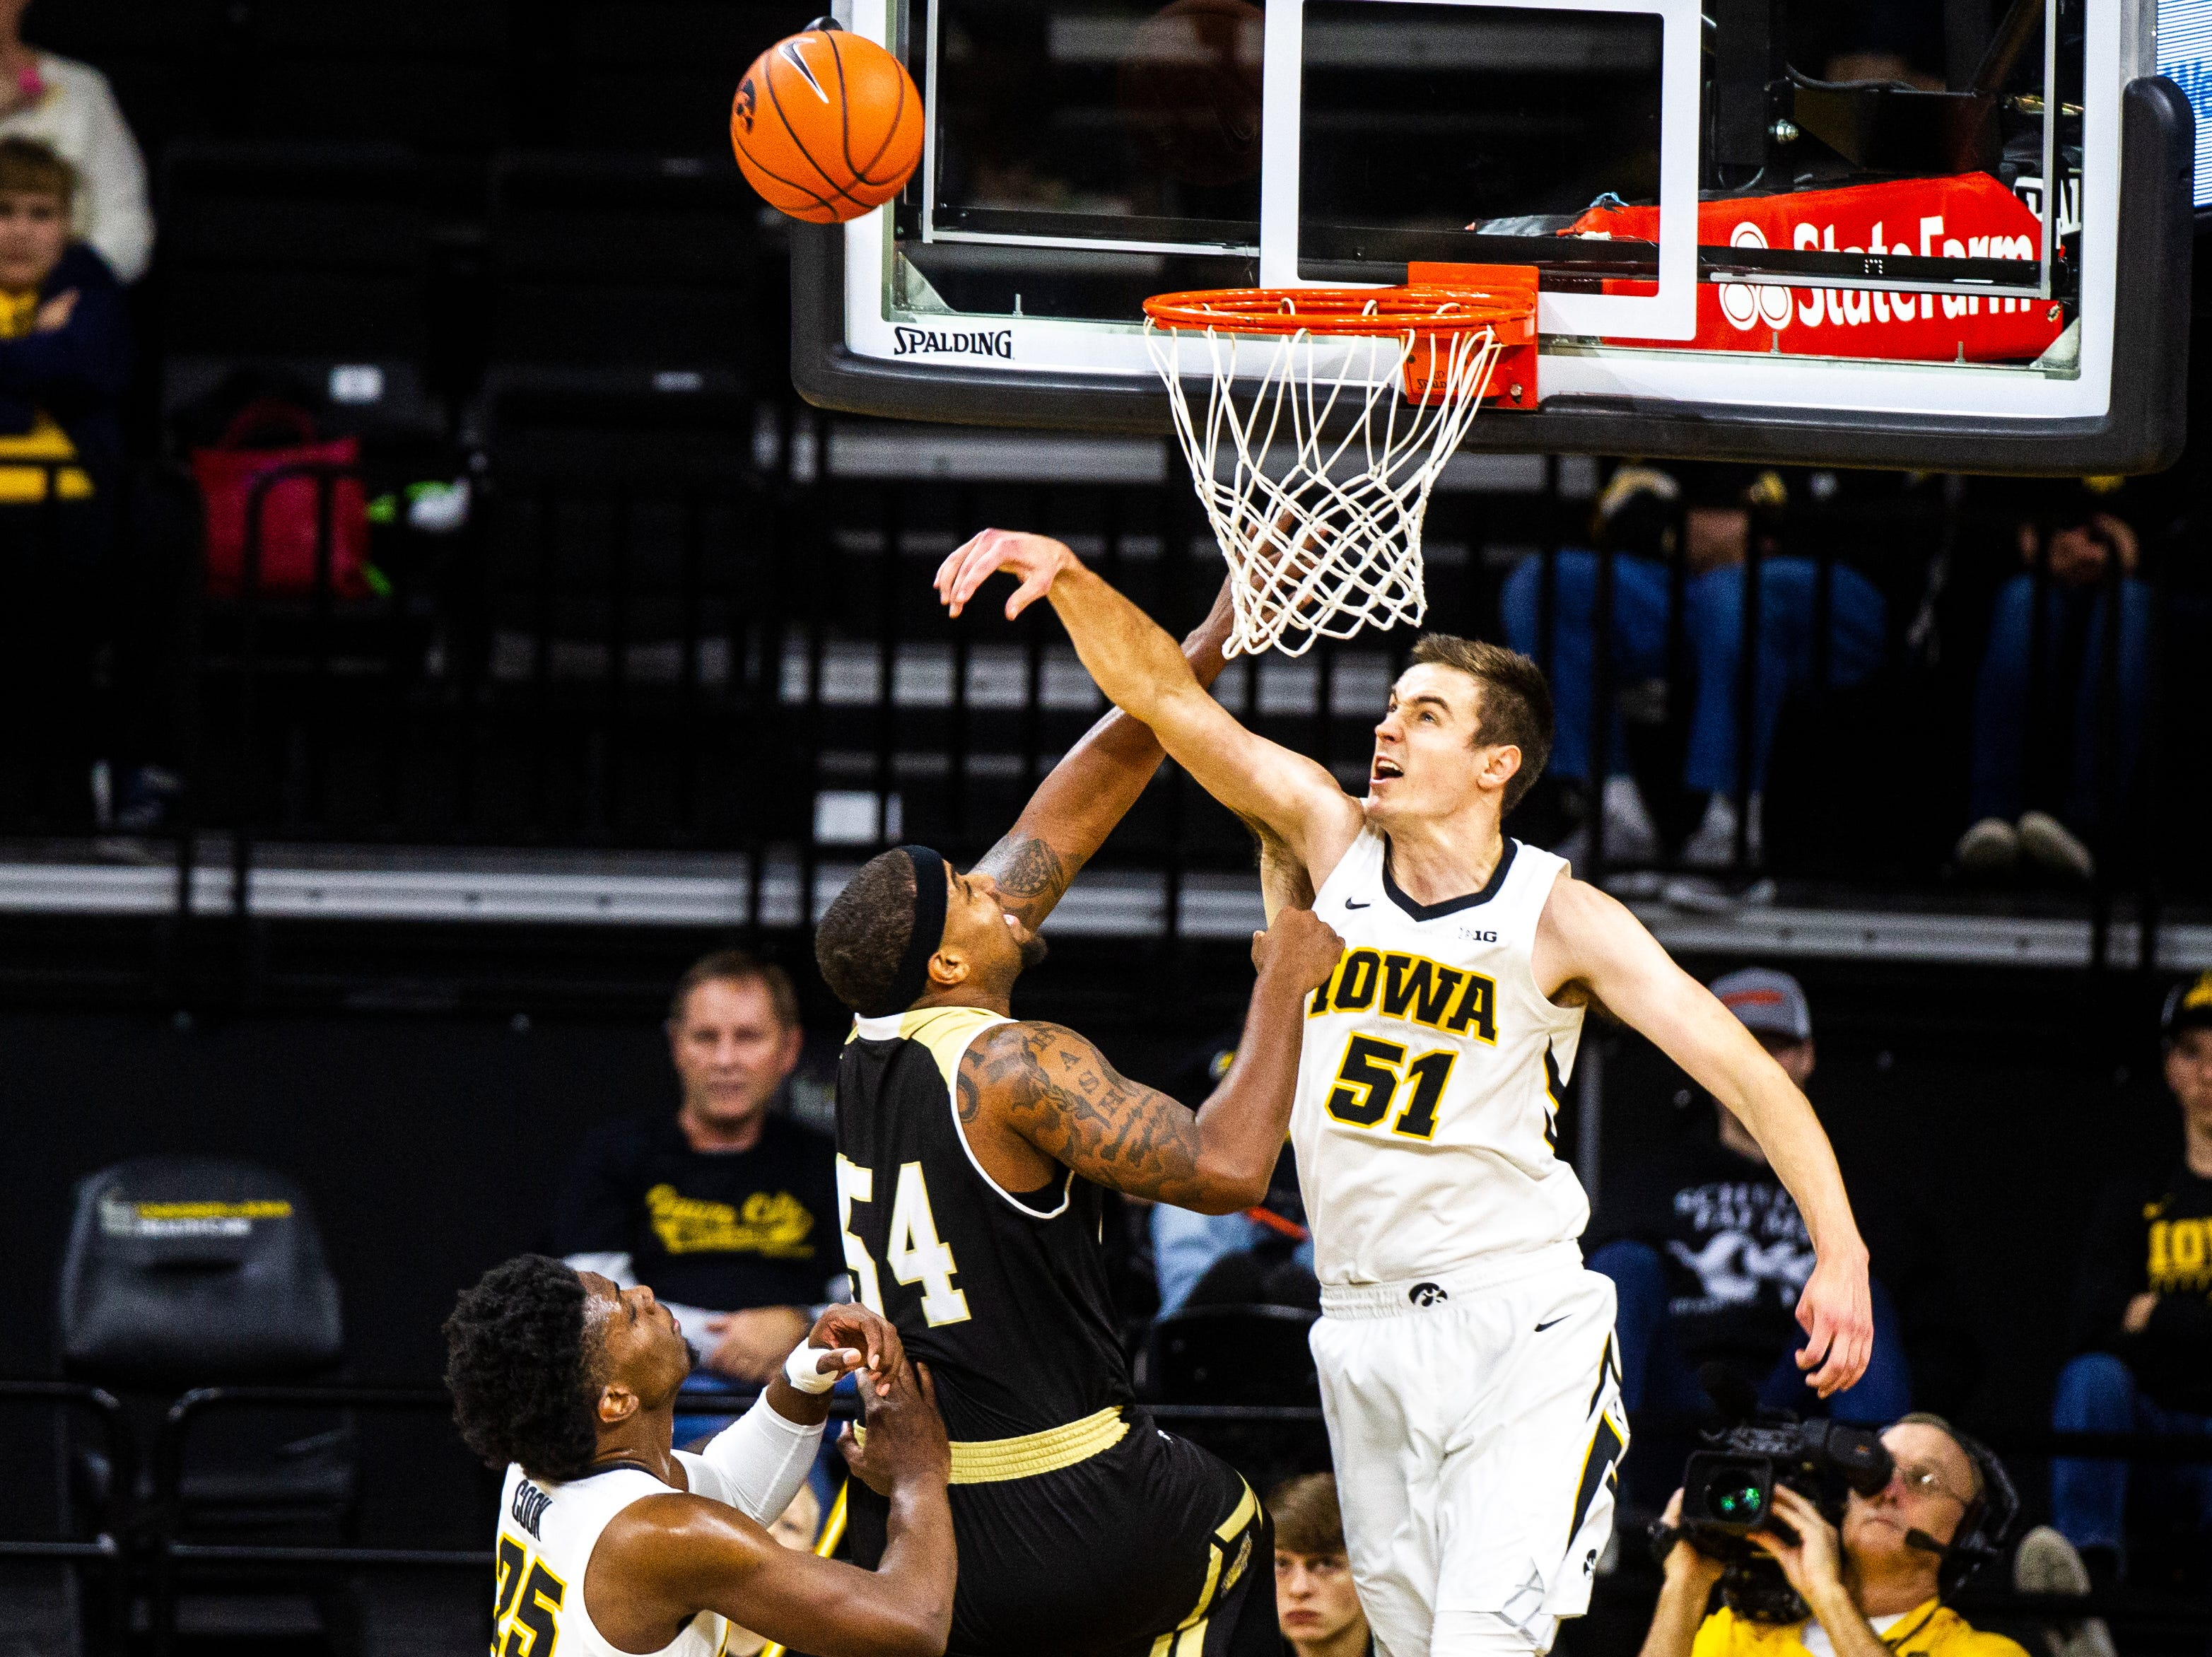 Iowa forward Nicholas Baer (51) blocks Bryant forward SaBastian Townes (54) during a NCAA men's basketball game on Saturday, Dec. 29, 2018, at Carver-Hawkeye Arena in Iowa City.